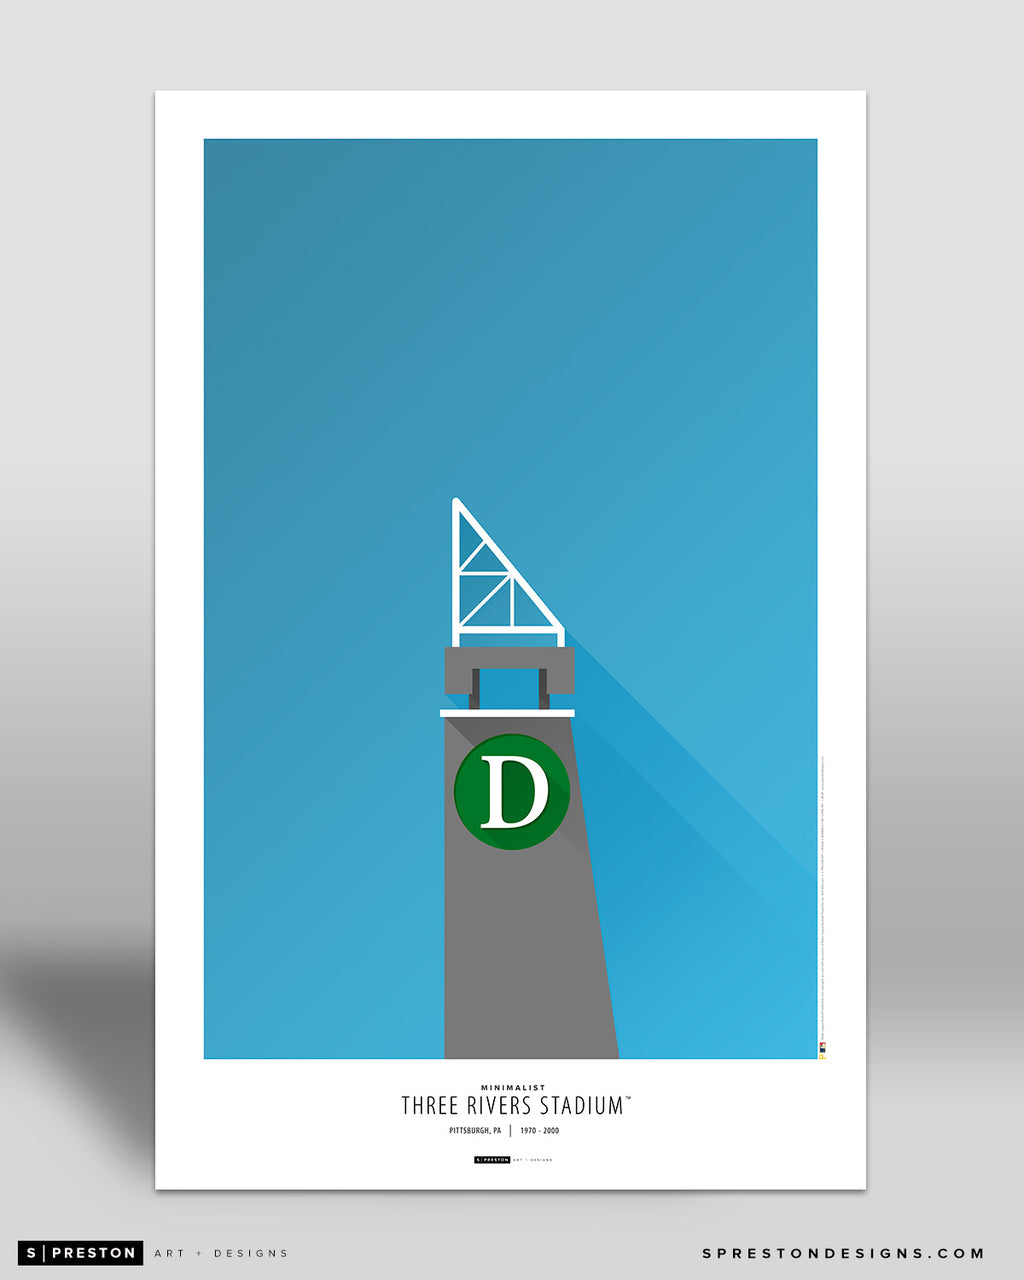 Minimalist Three Rivers Stadium Poster Print Pittsburgh Pirates - S Preston